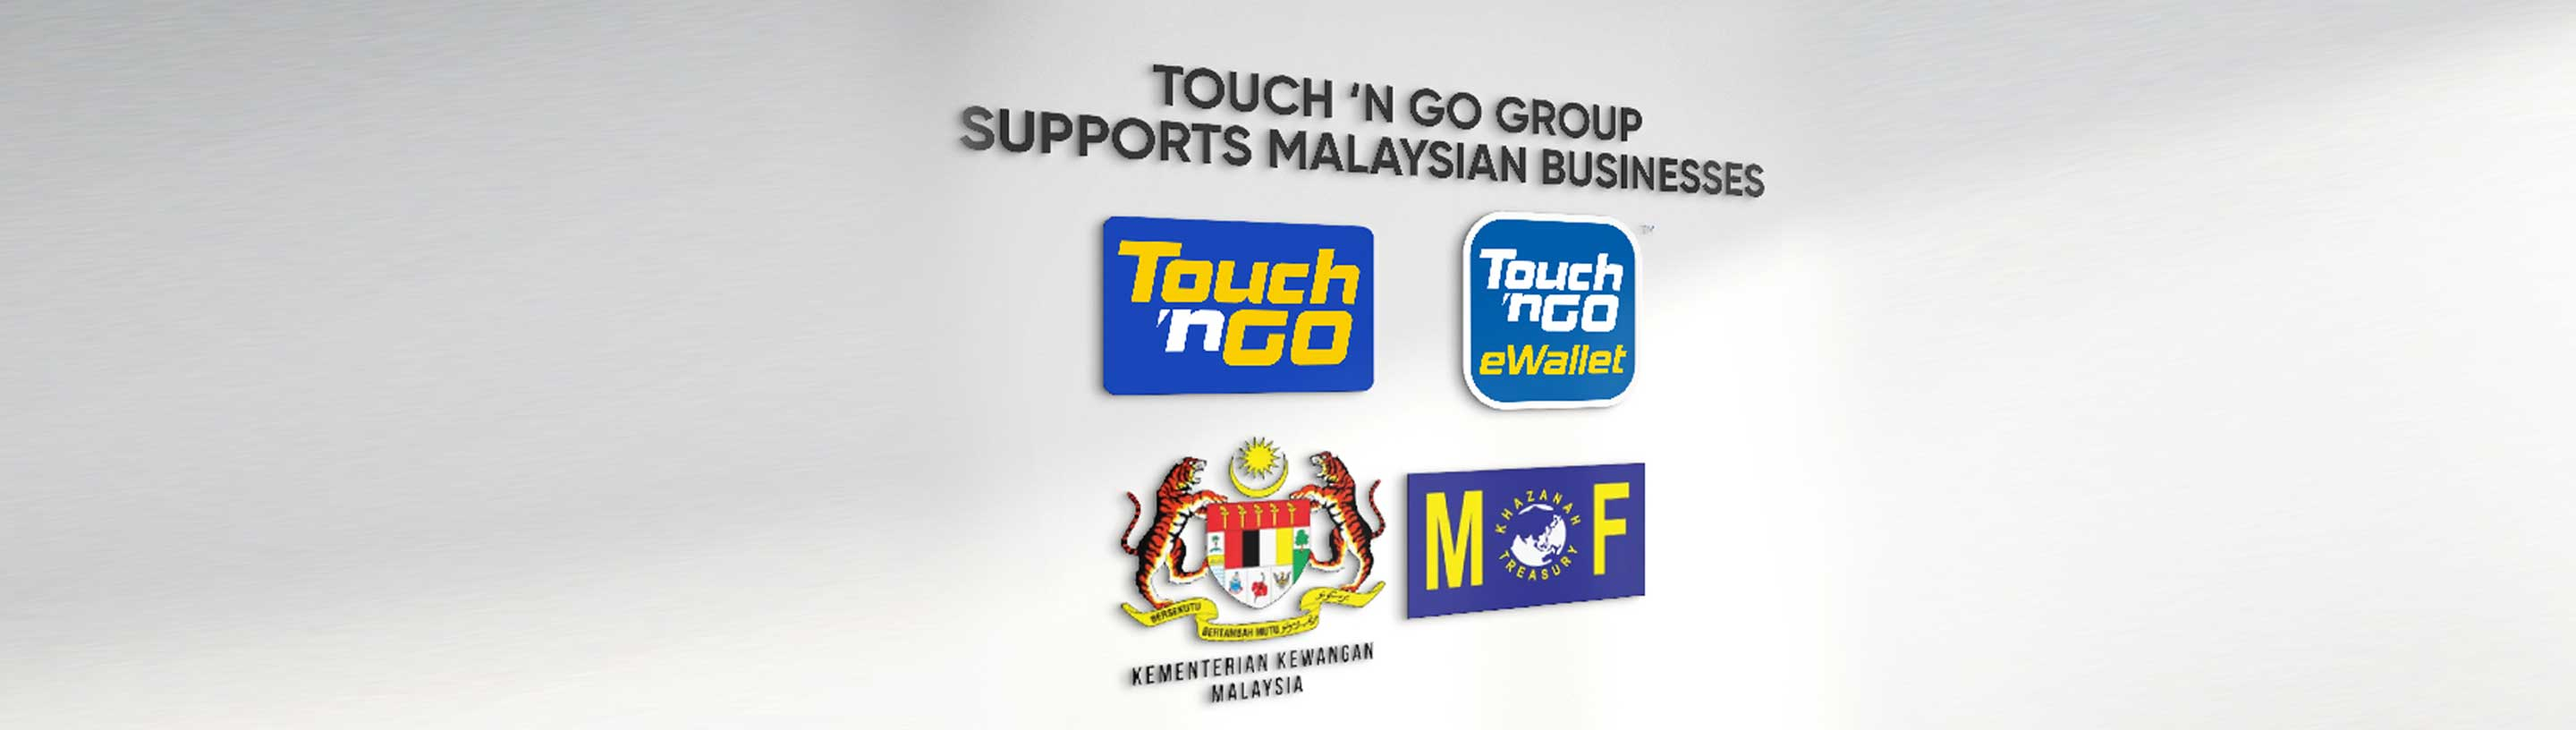 Touch 'n Go Group supports Malaysian businesses